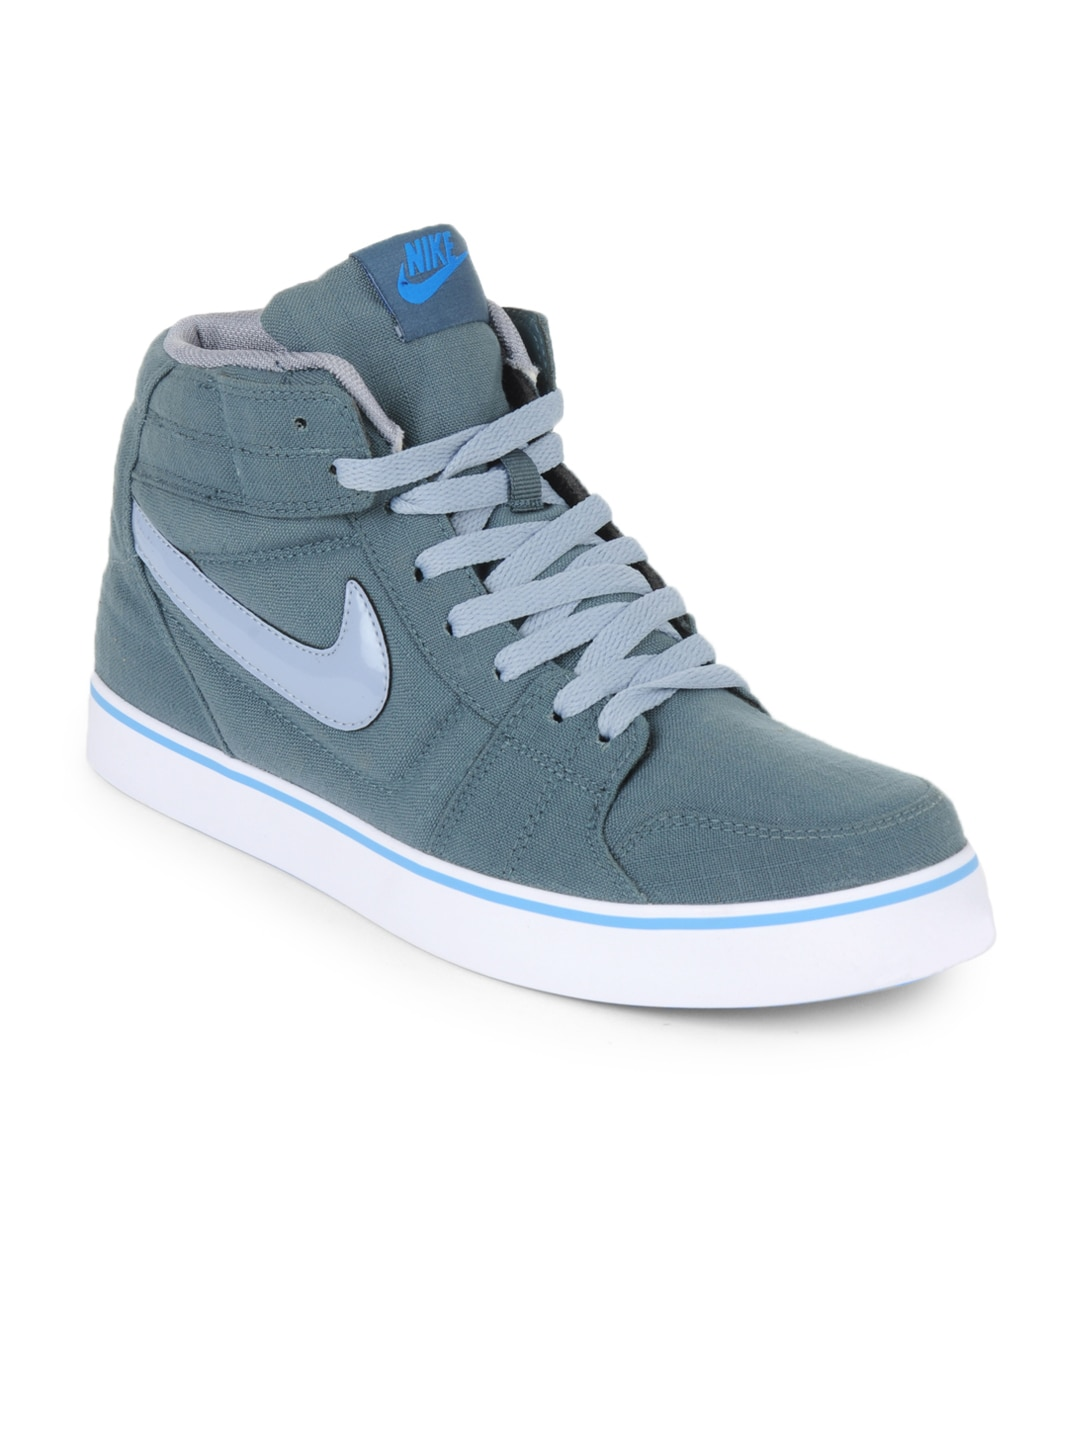 Nike 487680-402 Men Grey Liteforce Mid Casual Shoes- Price in India